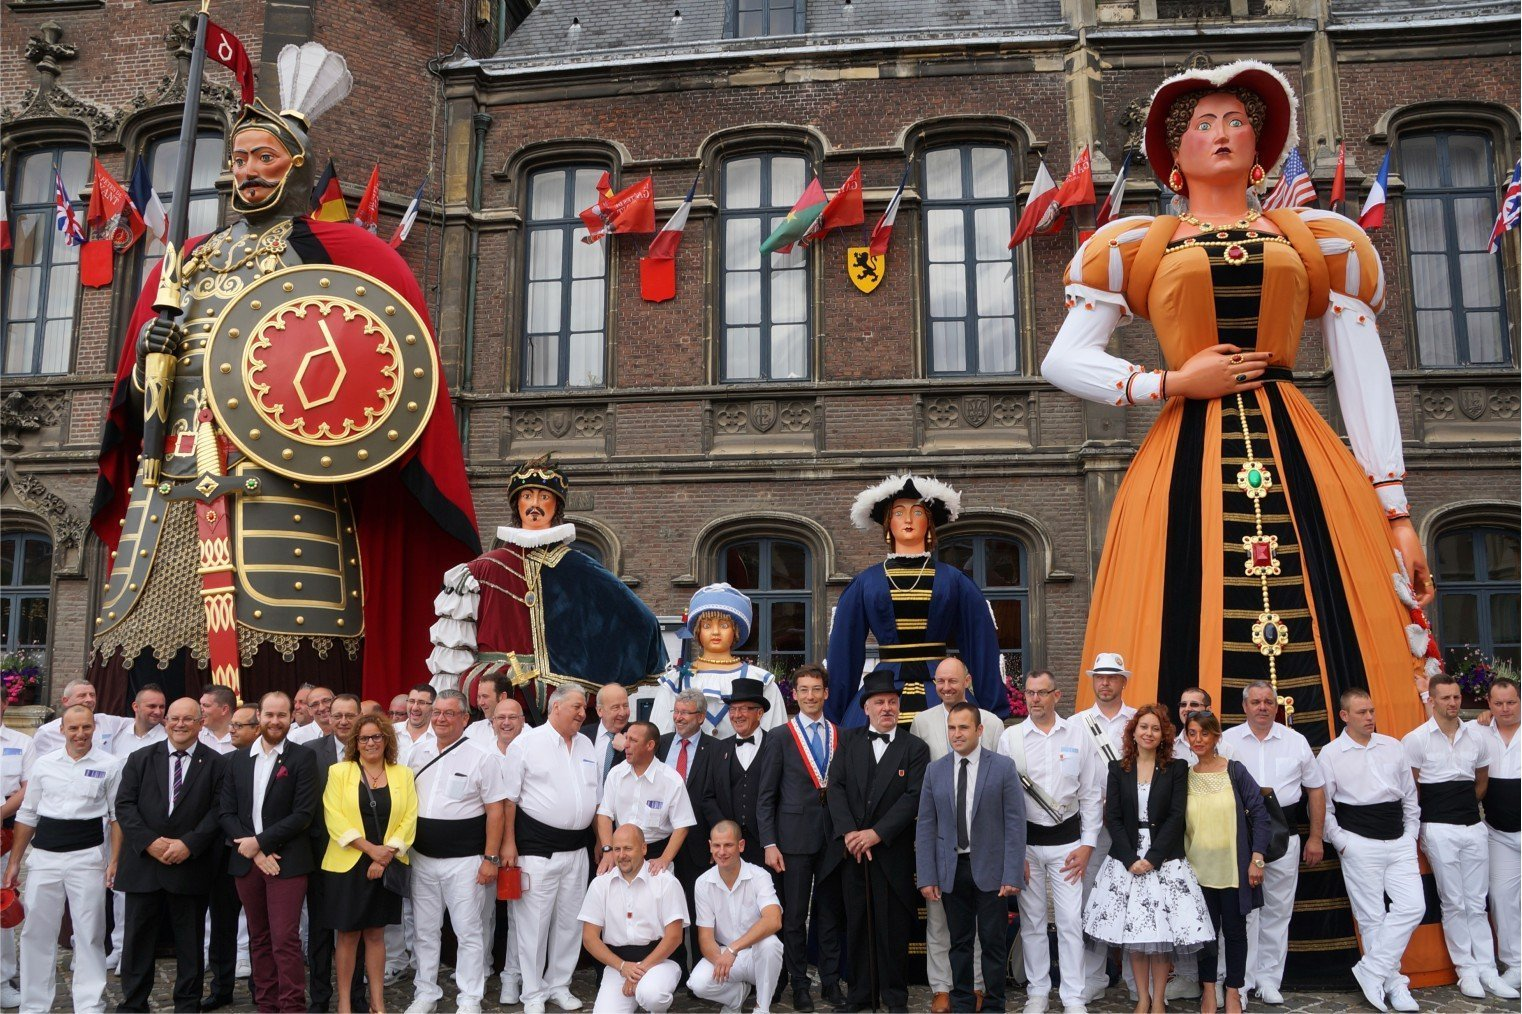 Festival of Giants (Gayant)